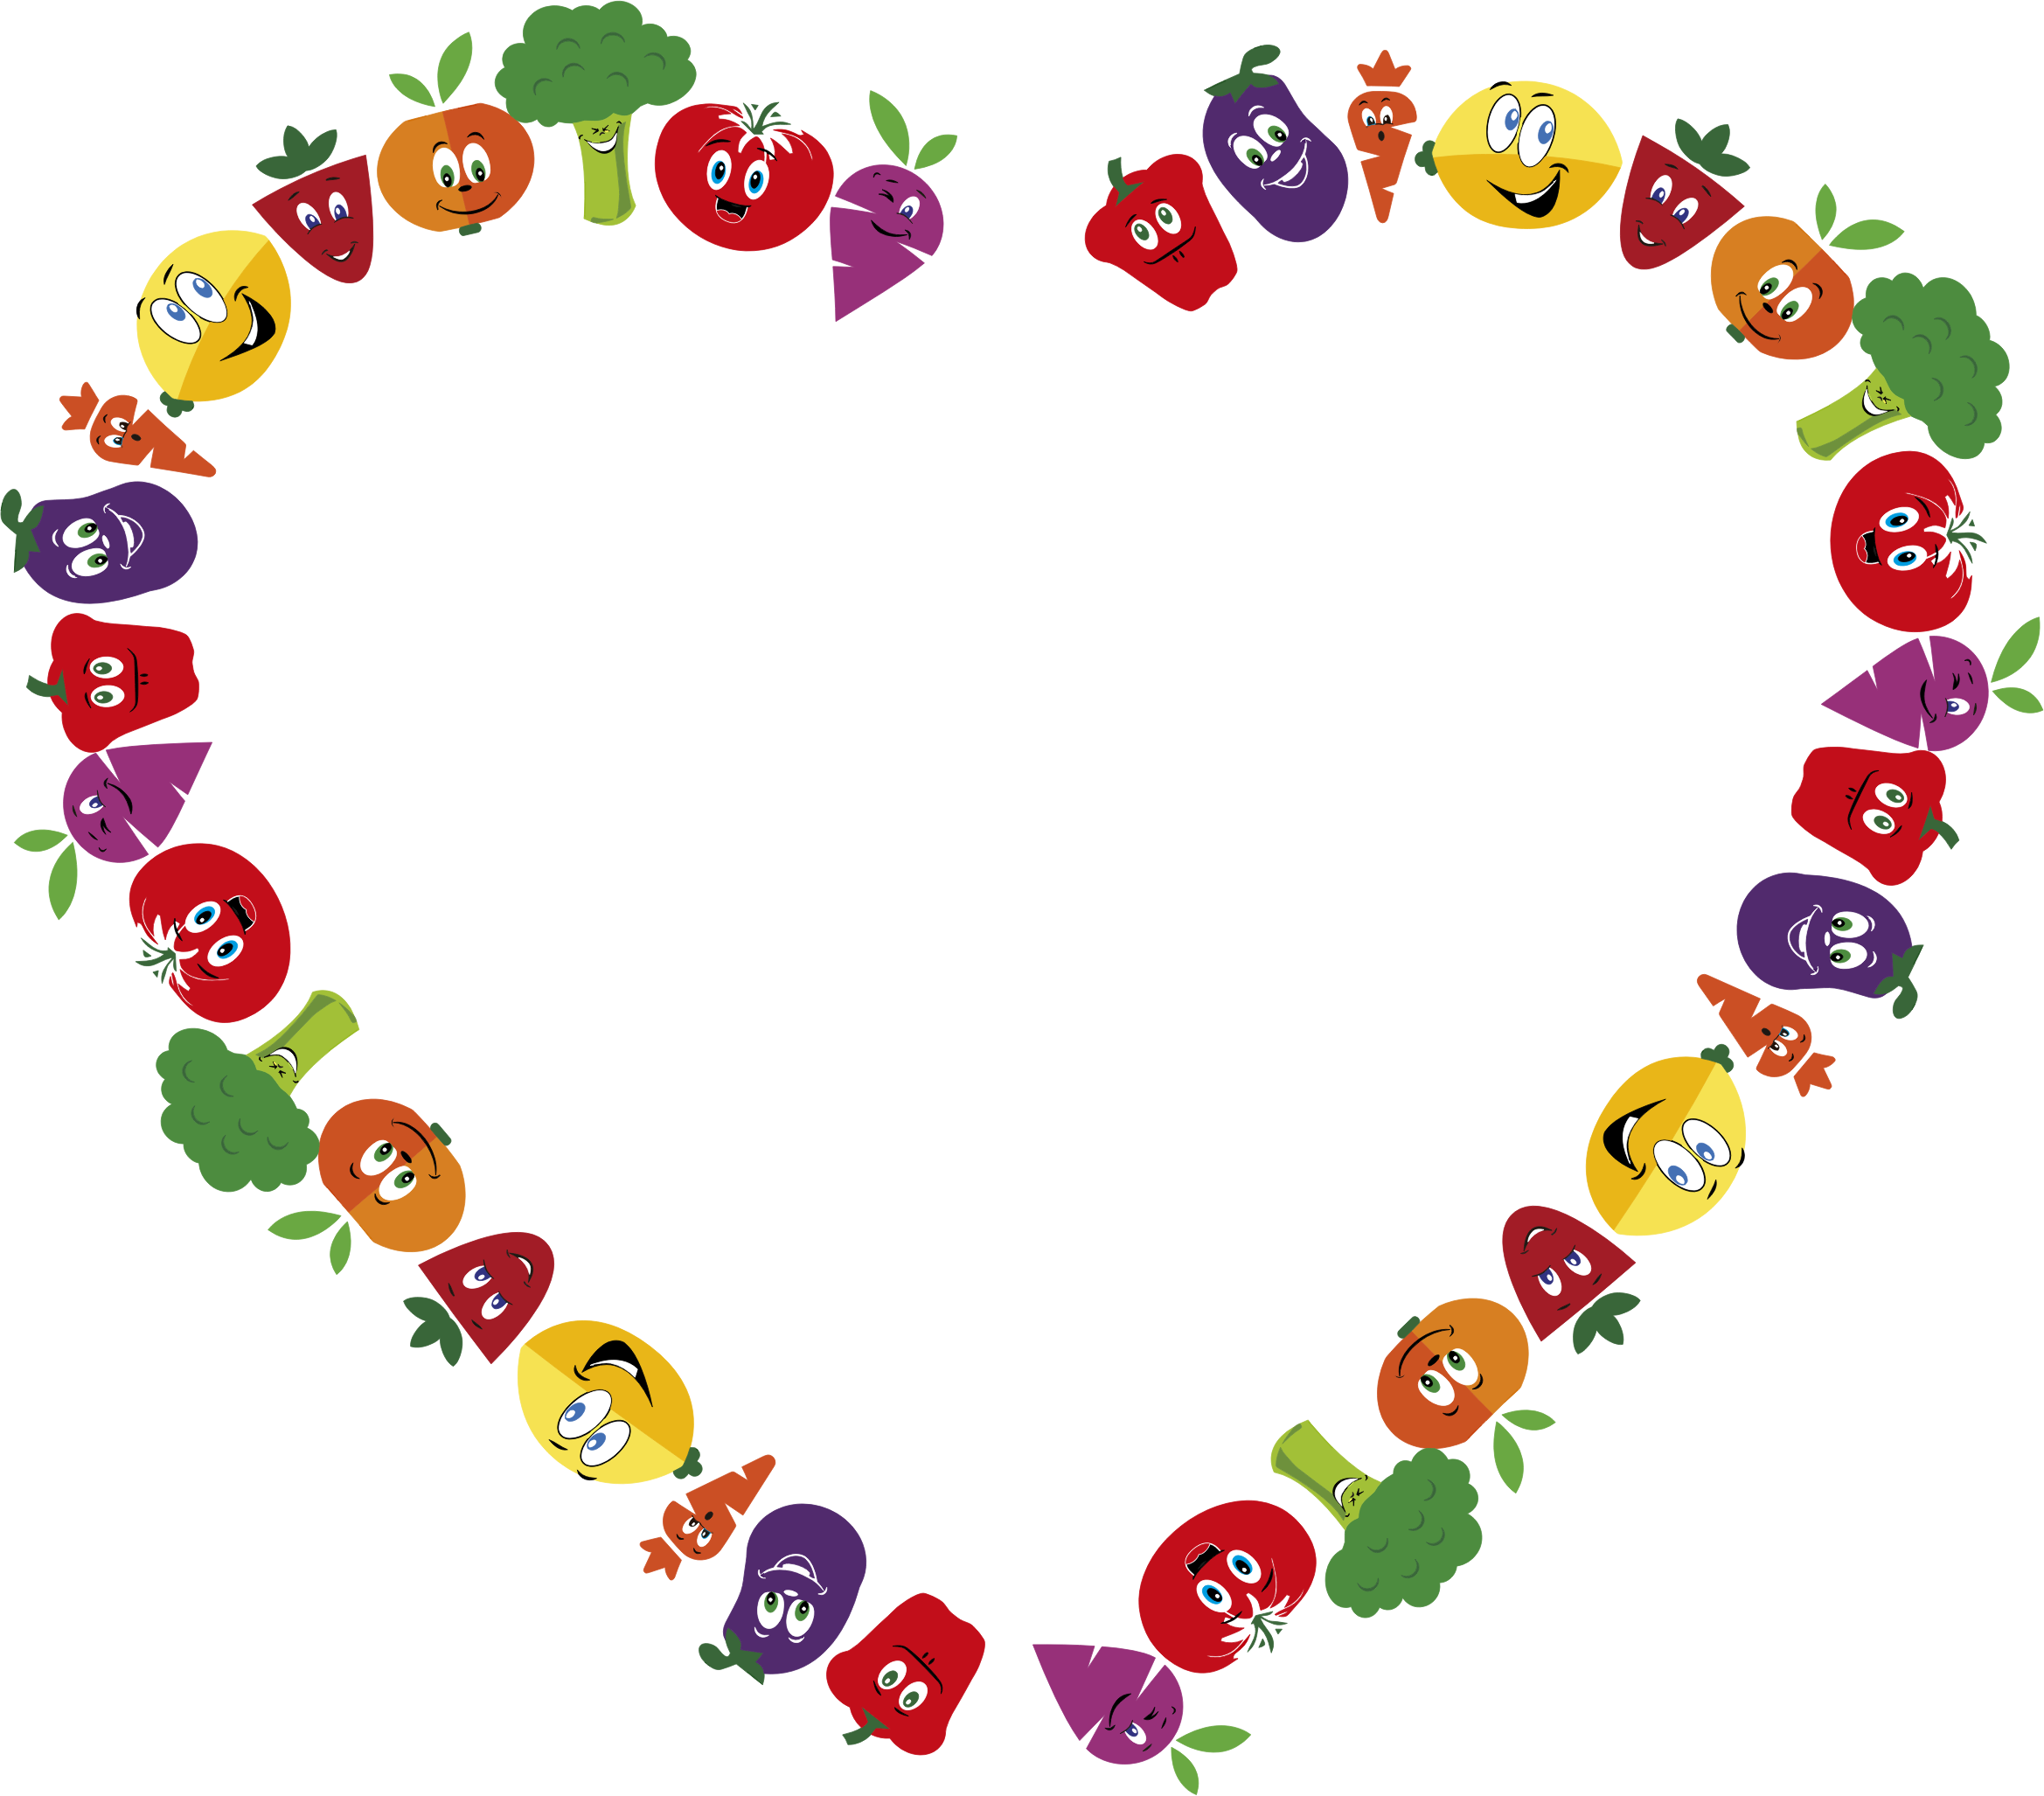 Heart clipart vegetable. Anthropomorphic fruits and vegetables